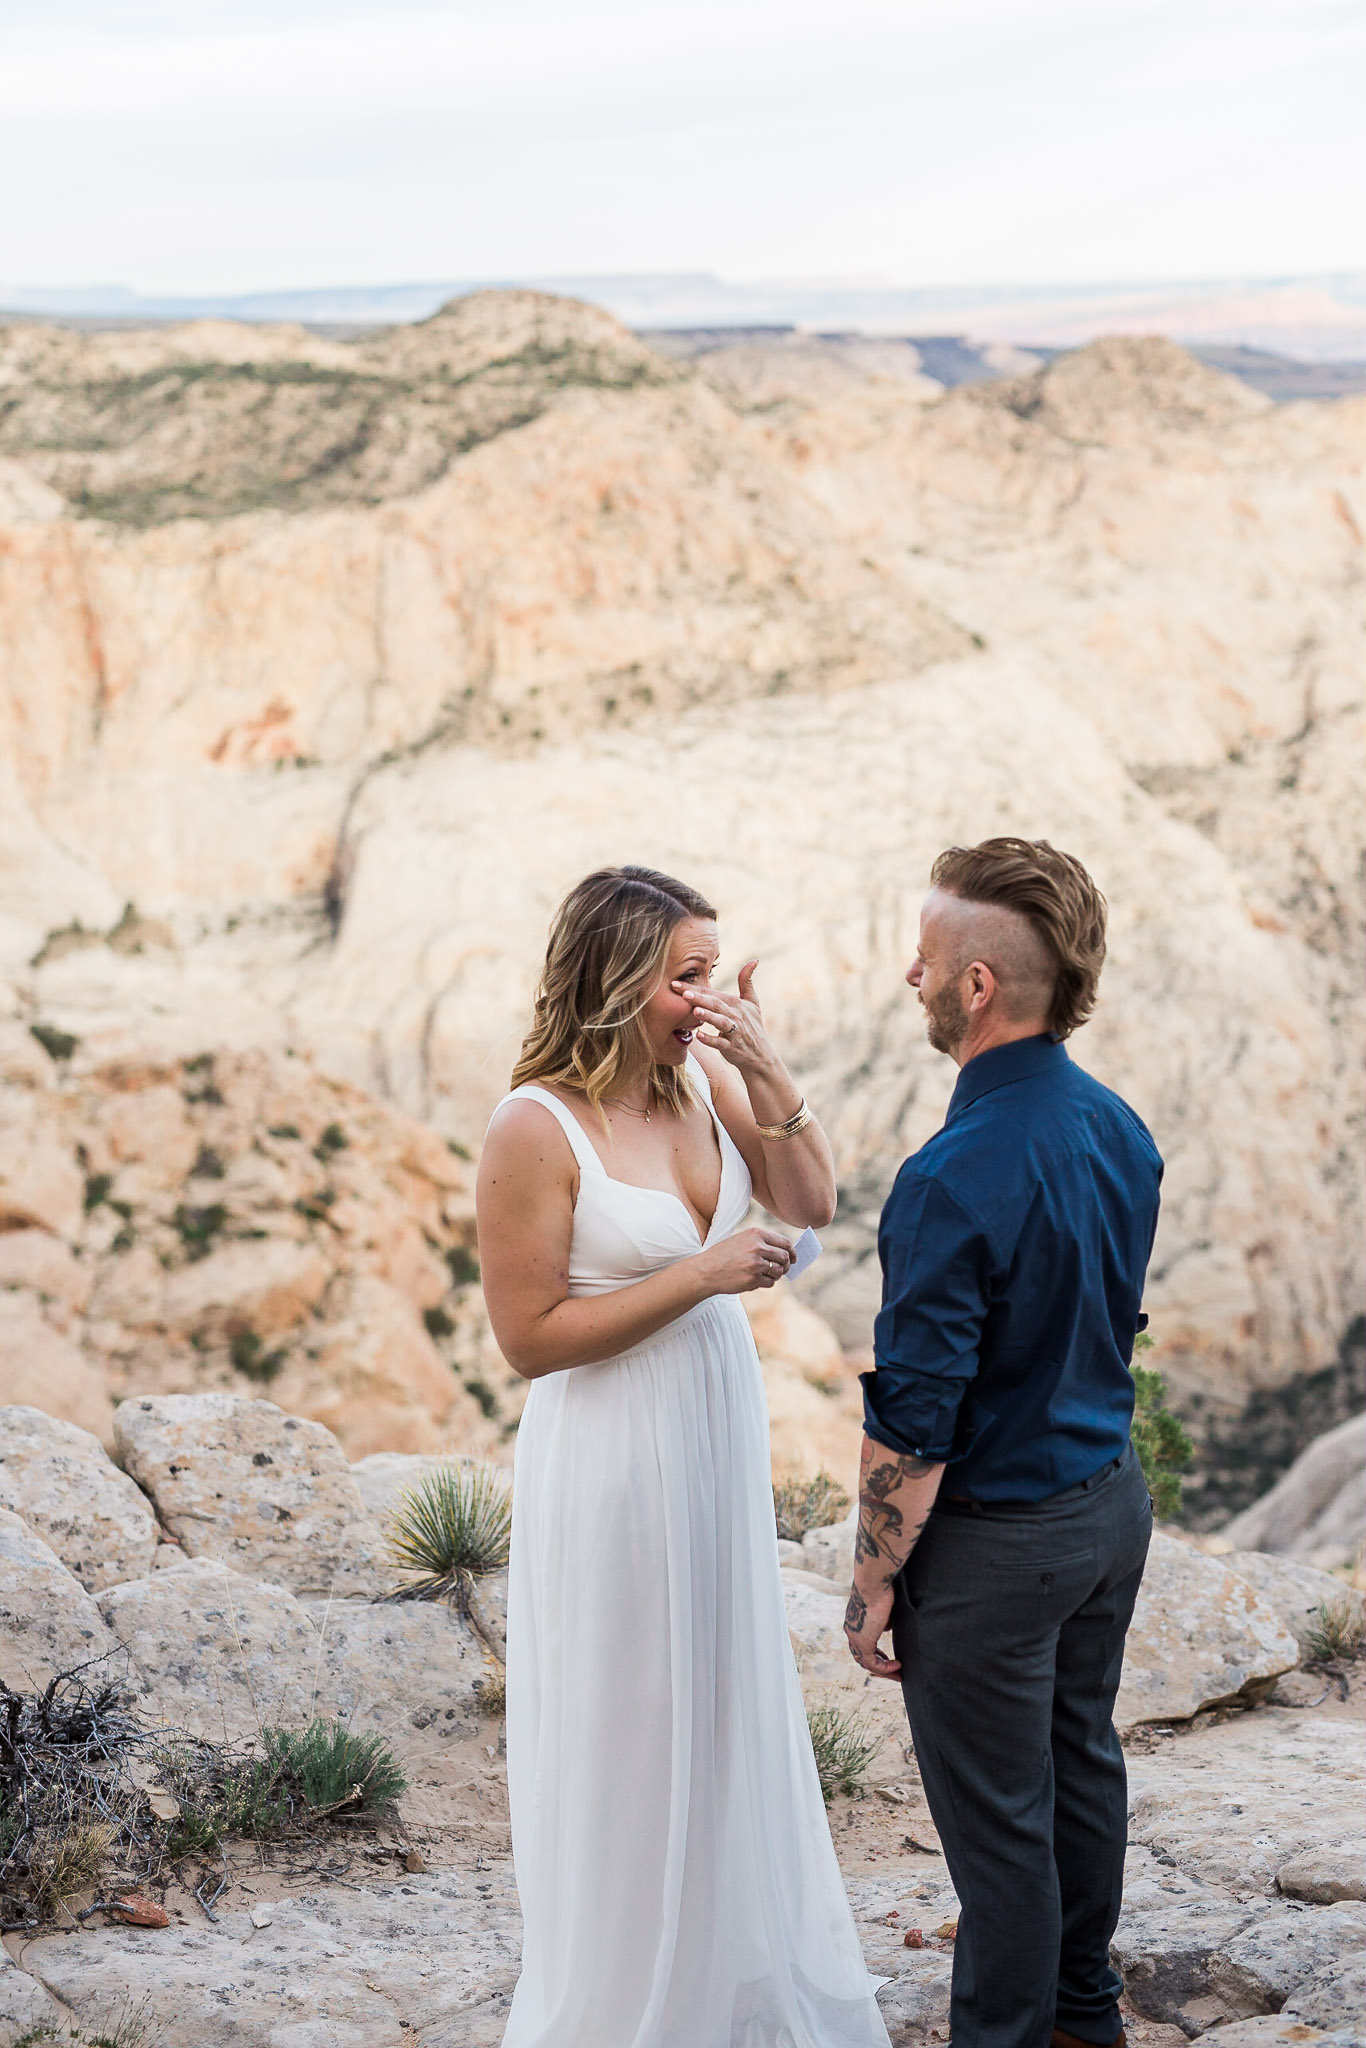 Wife wipes away tear during emotional vow renewal ceremony in Utah